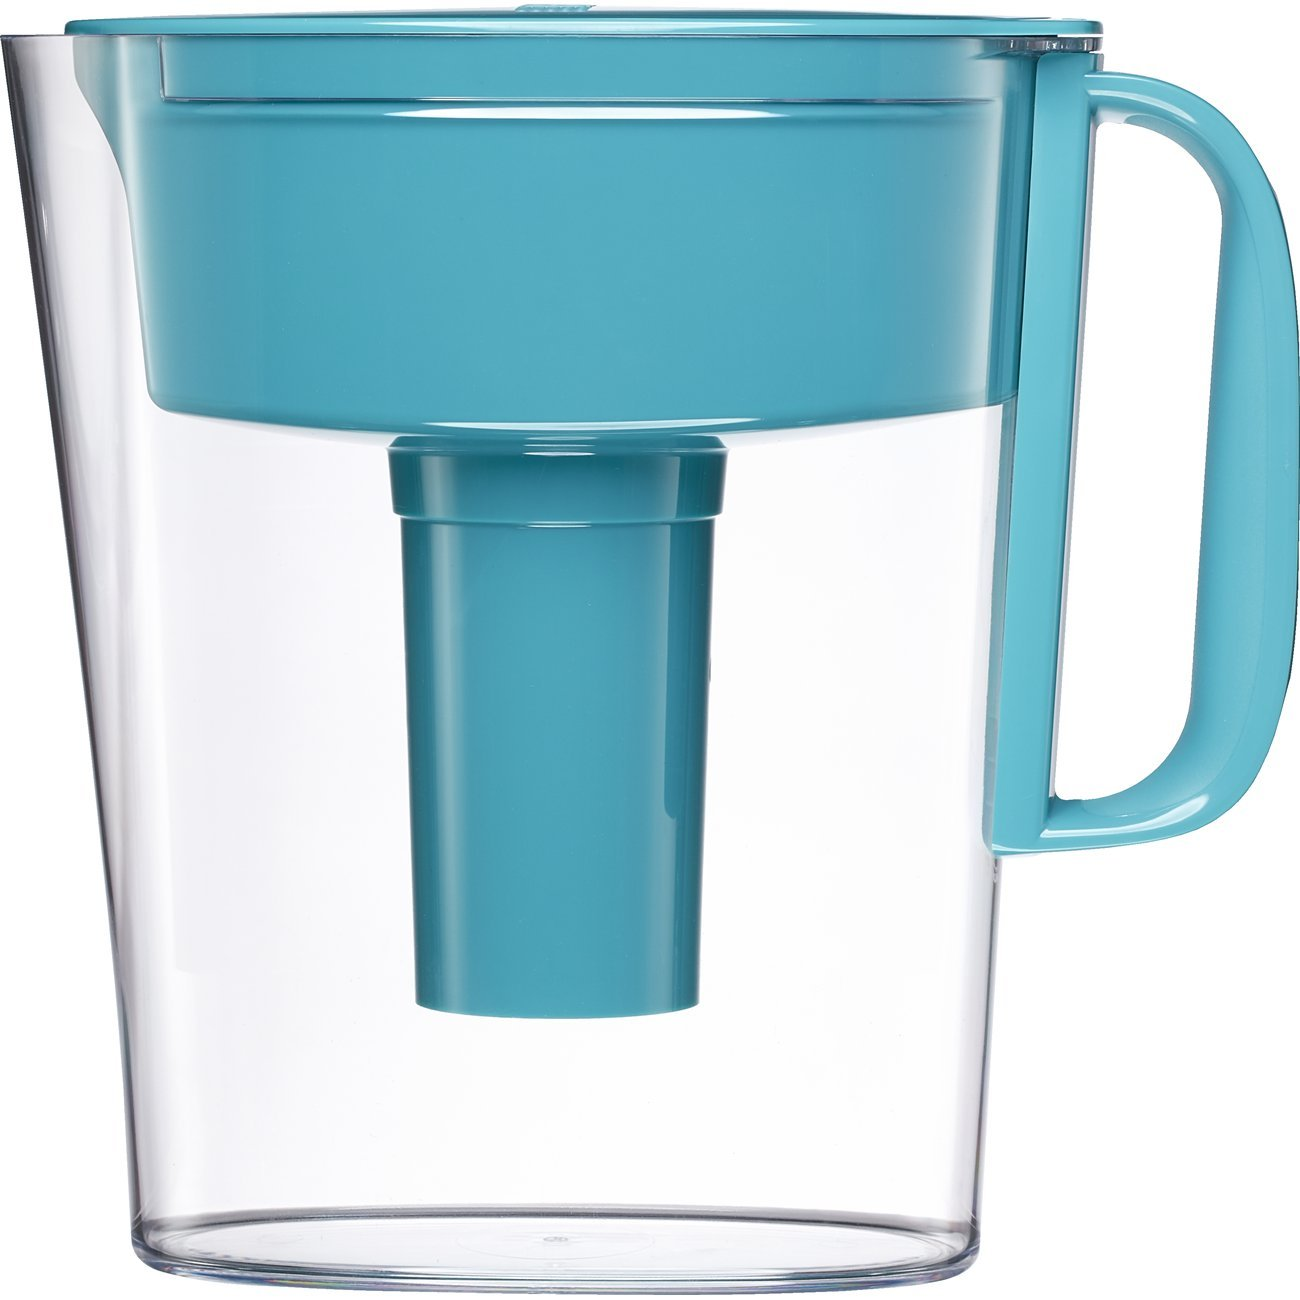 Waterfilter Amazoncom Brita 10 Cup Everyday Water Pitcher With 1 Filter Bpa